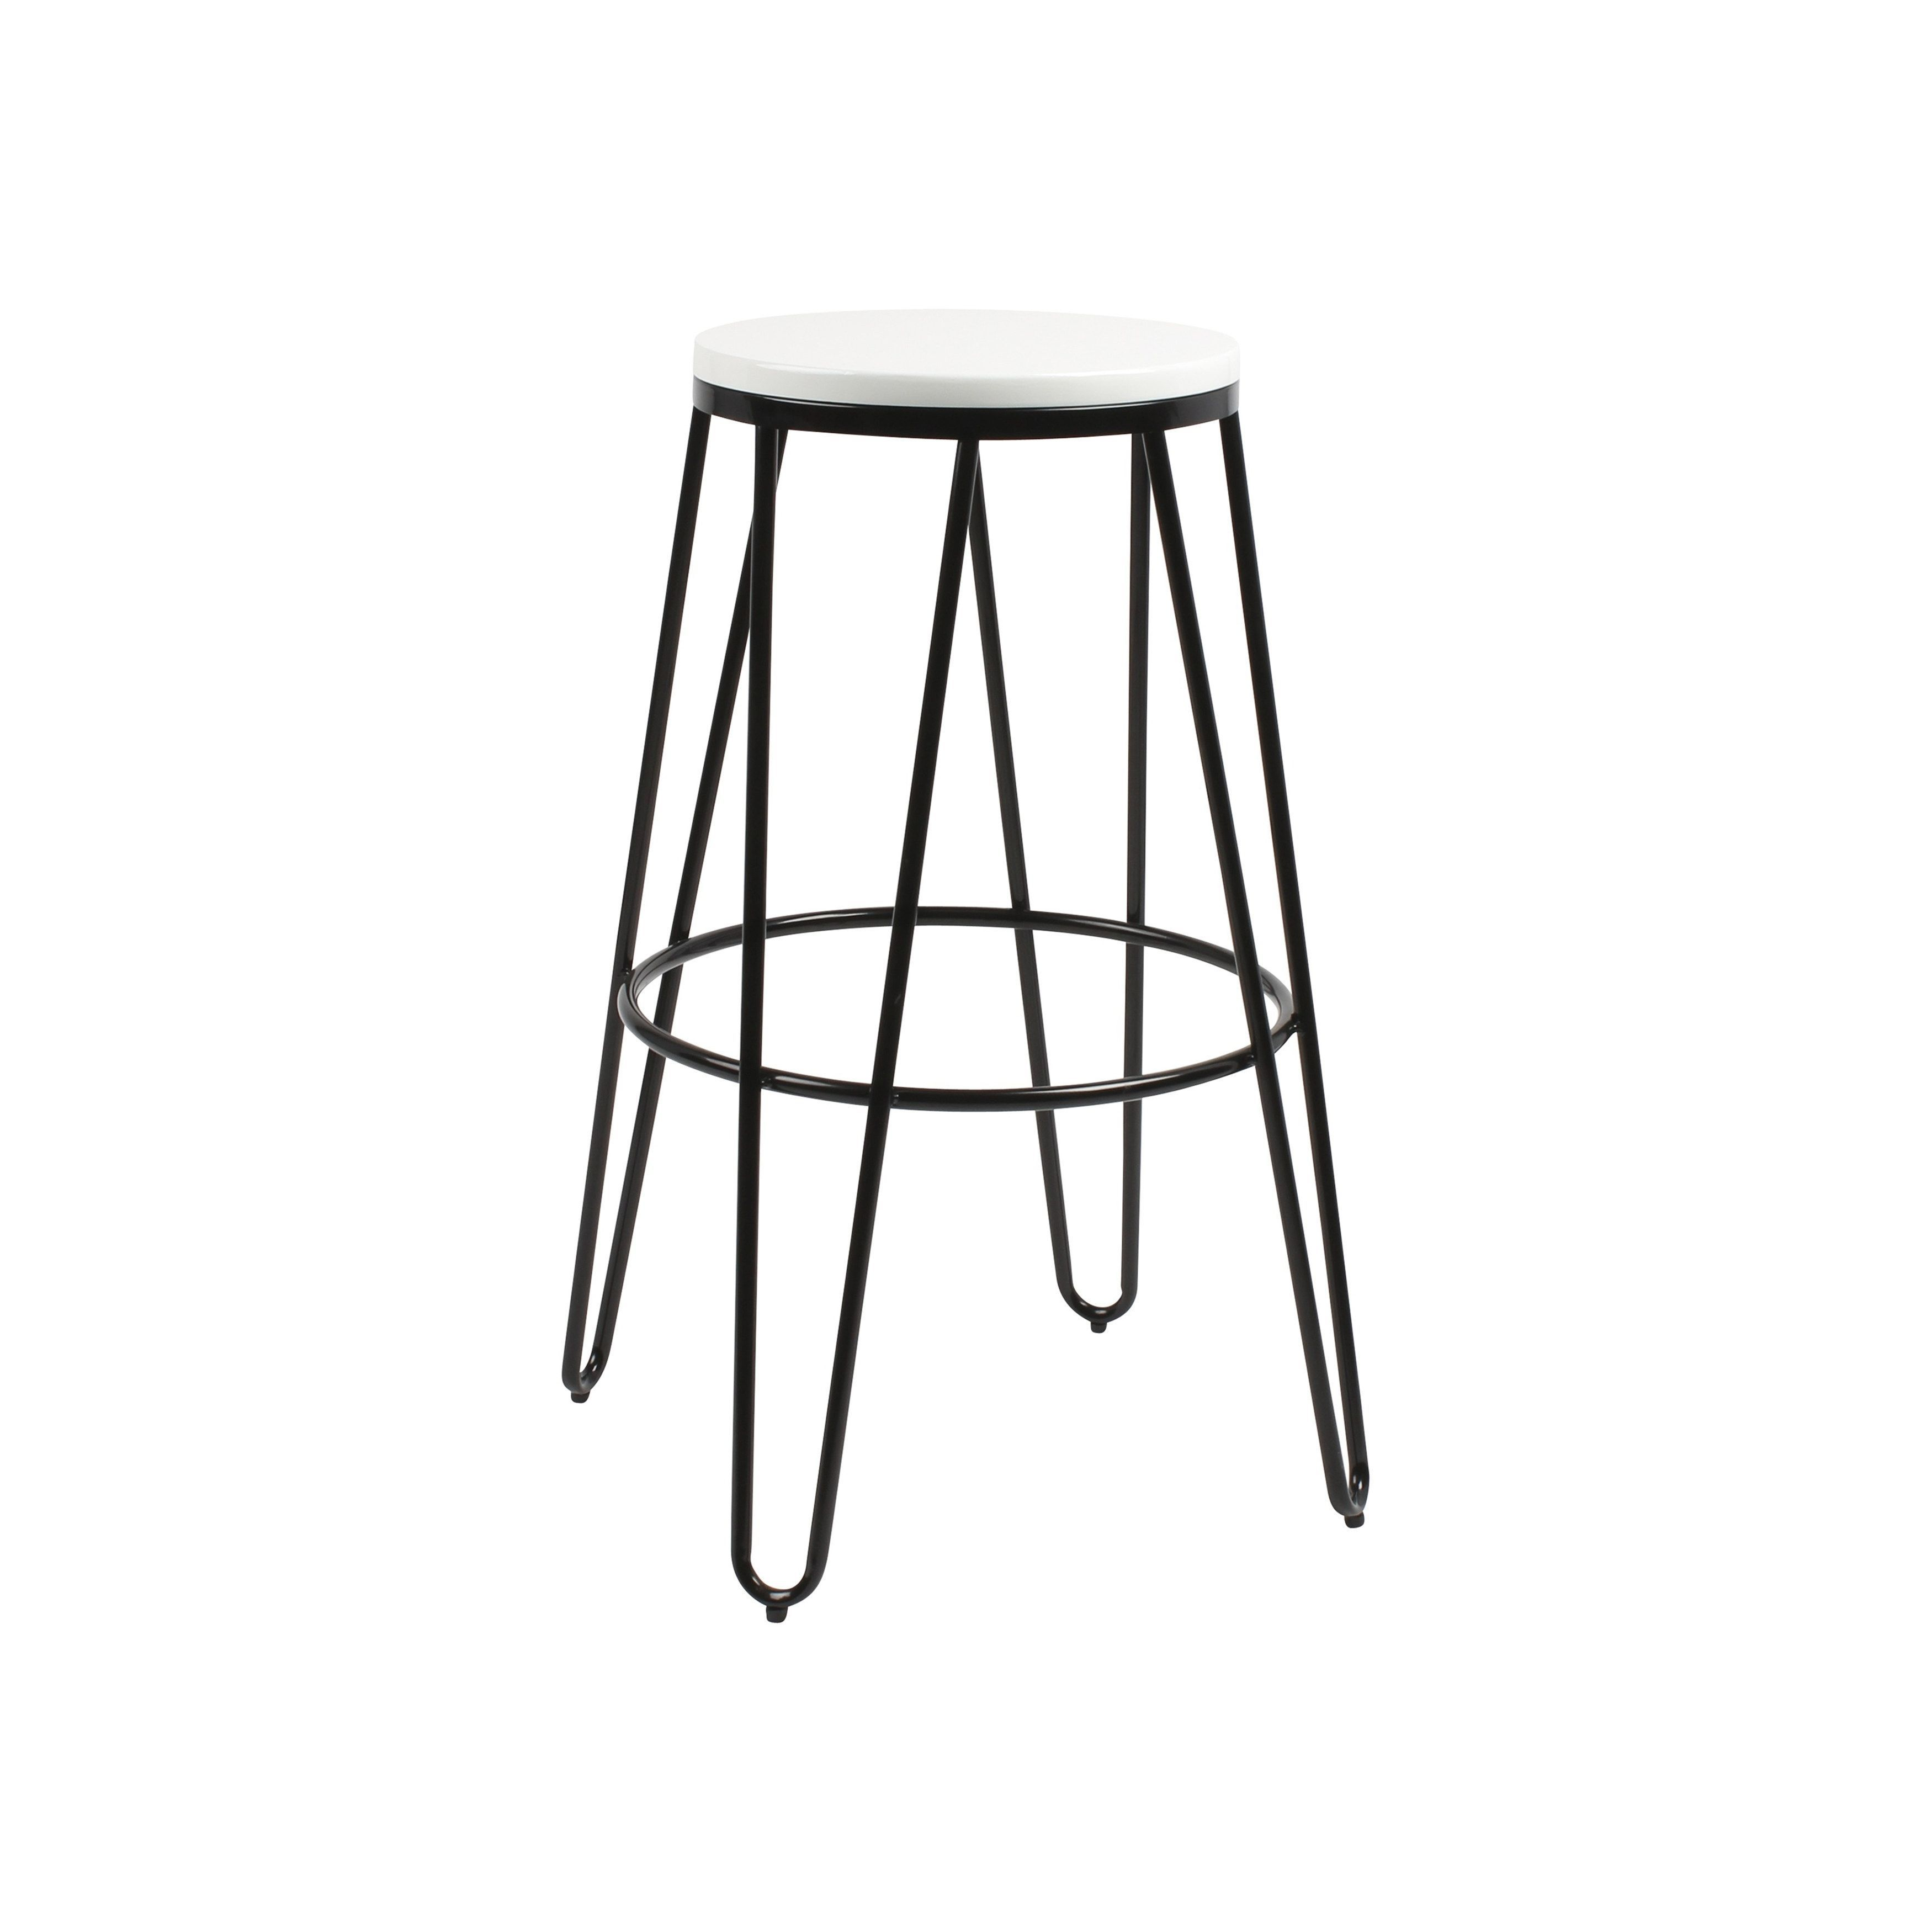 Kate and Laurel Tully Backless Two-tone Wood and Metal Bar Stools ...